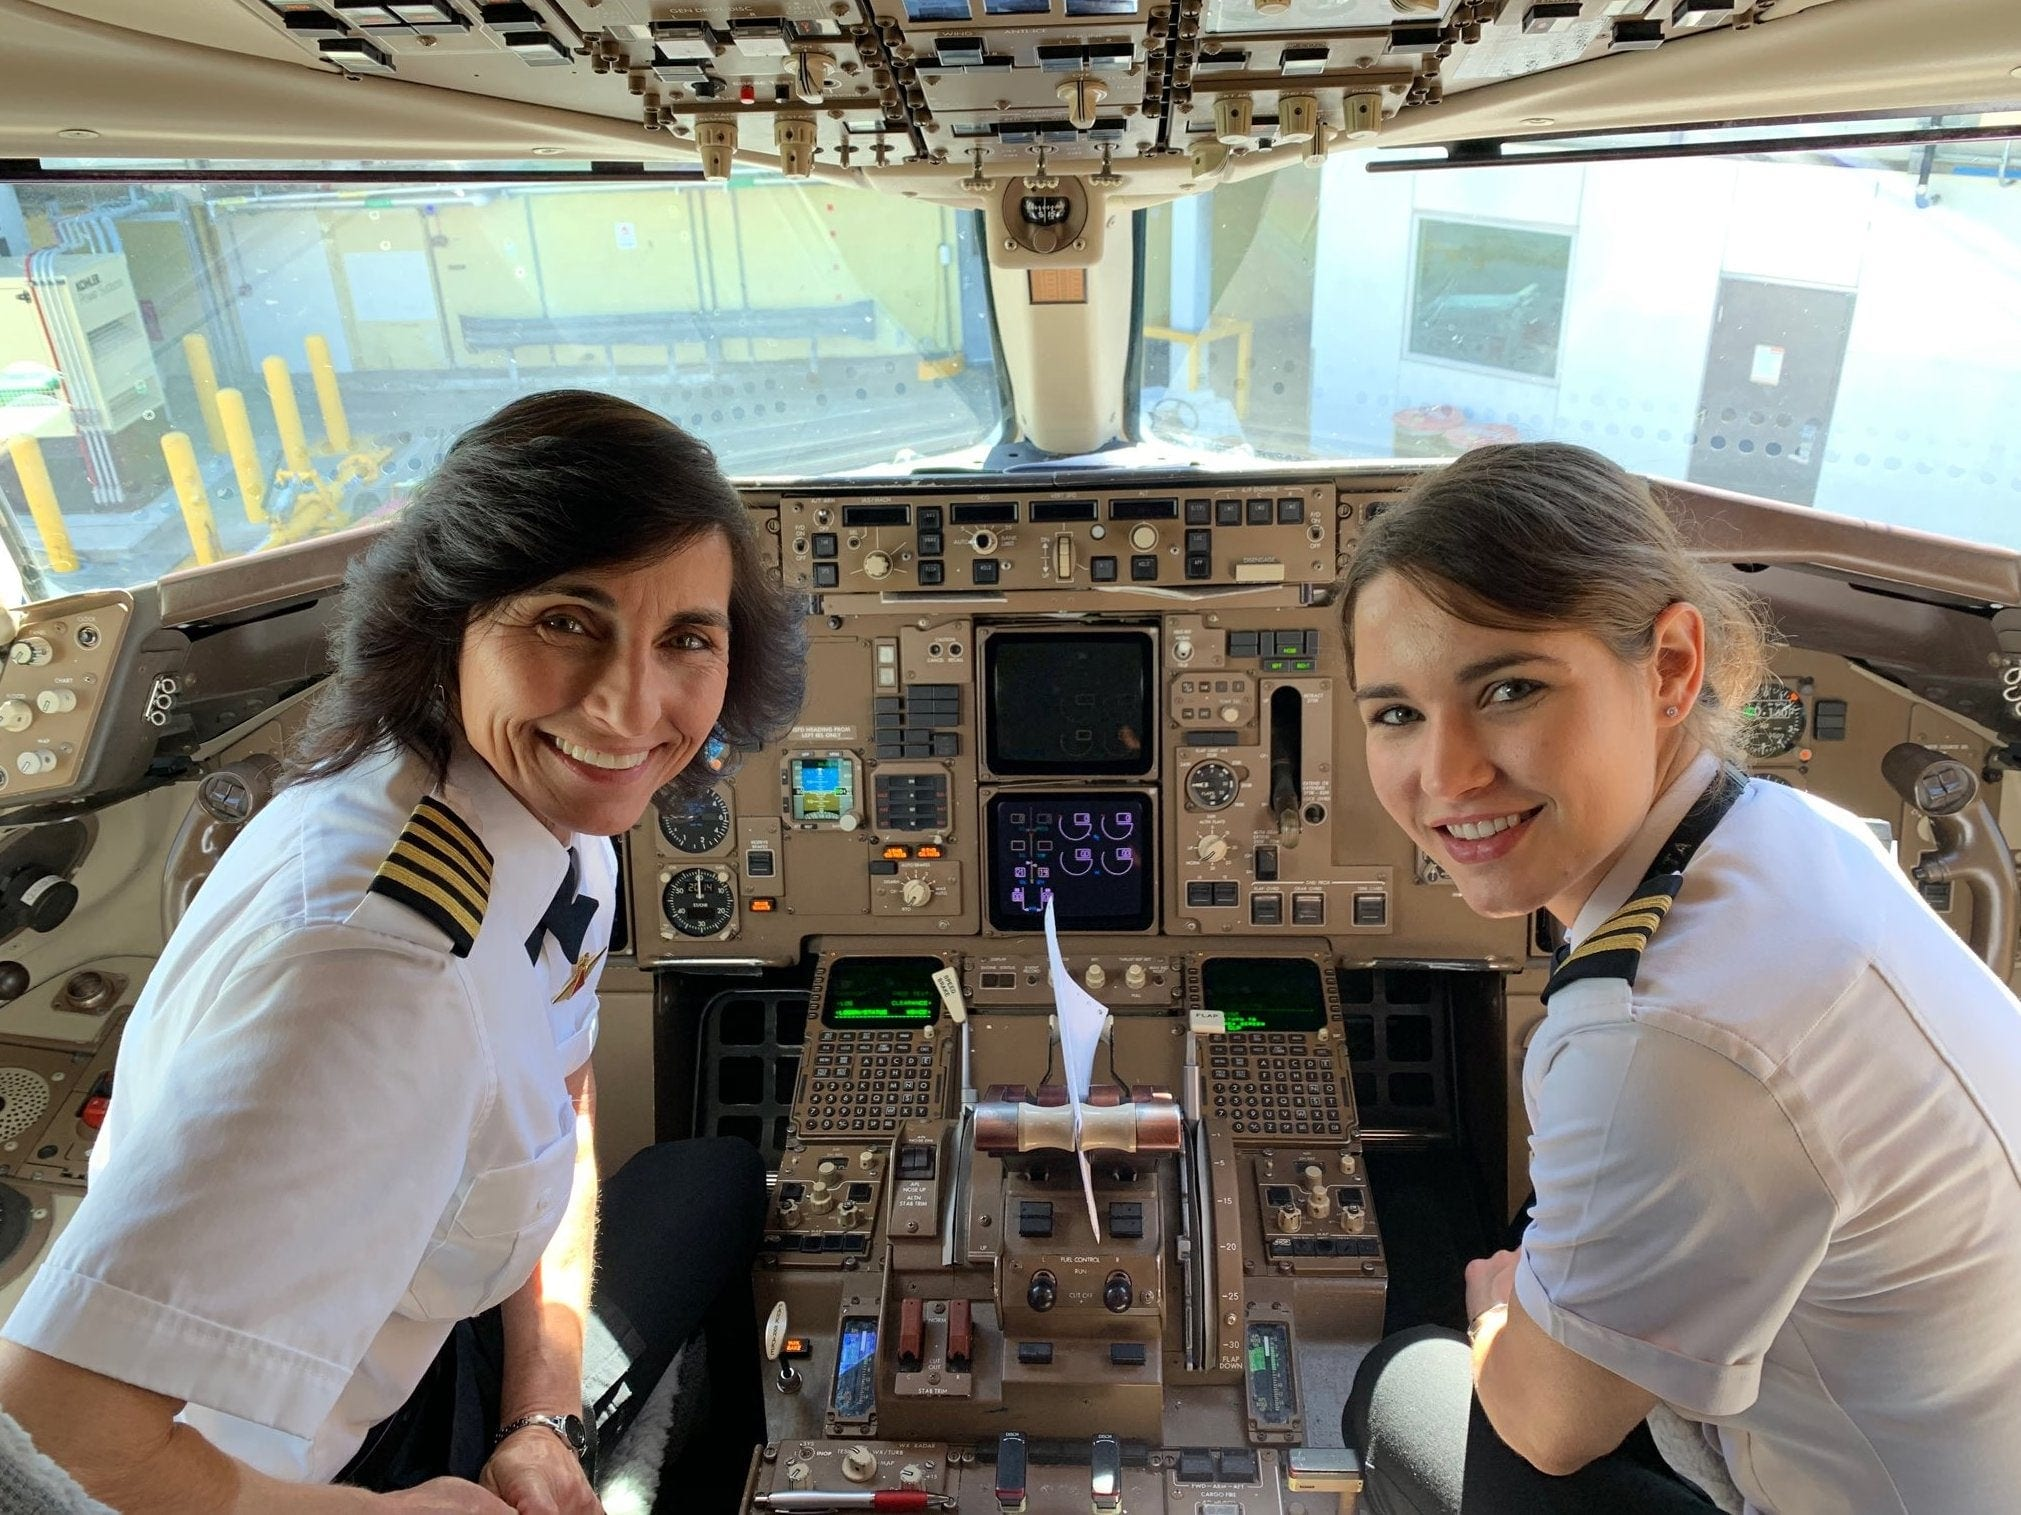 The First Mother-Daughter Pilot Duo in History